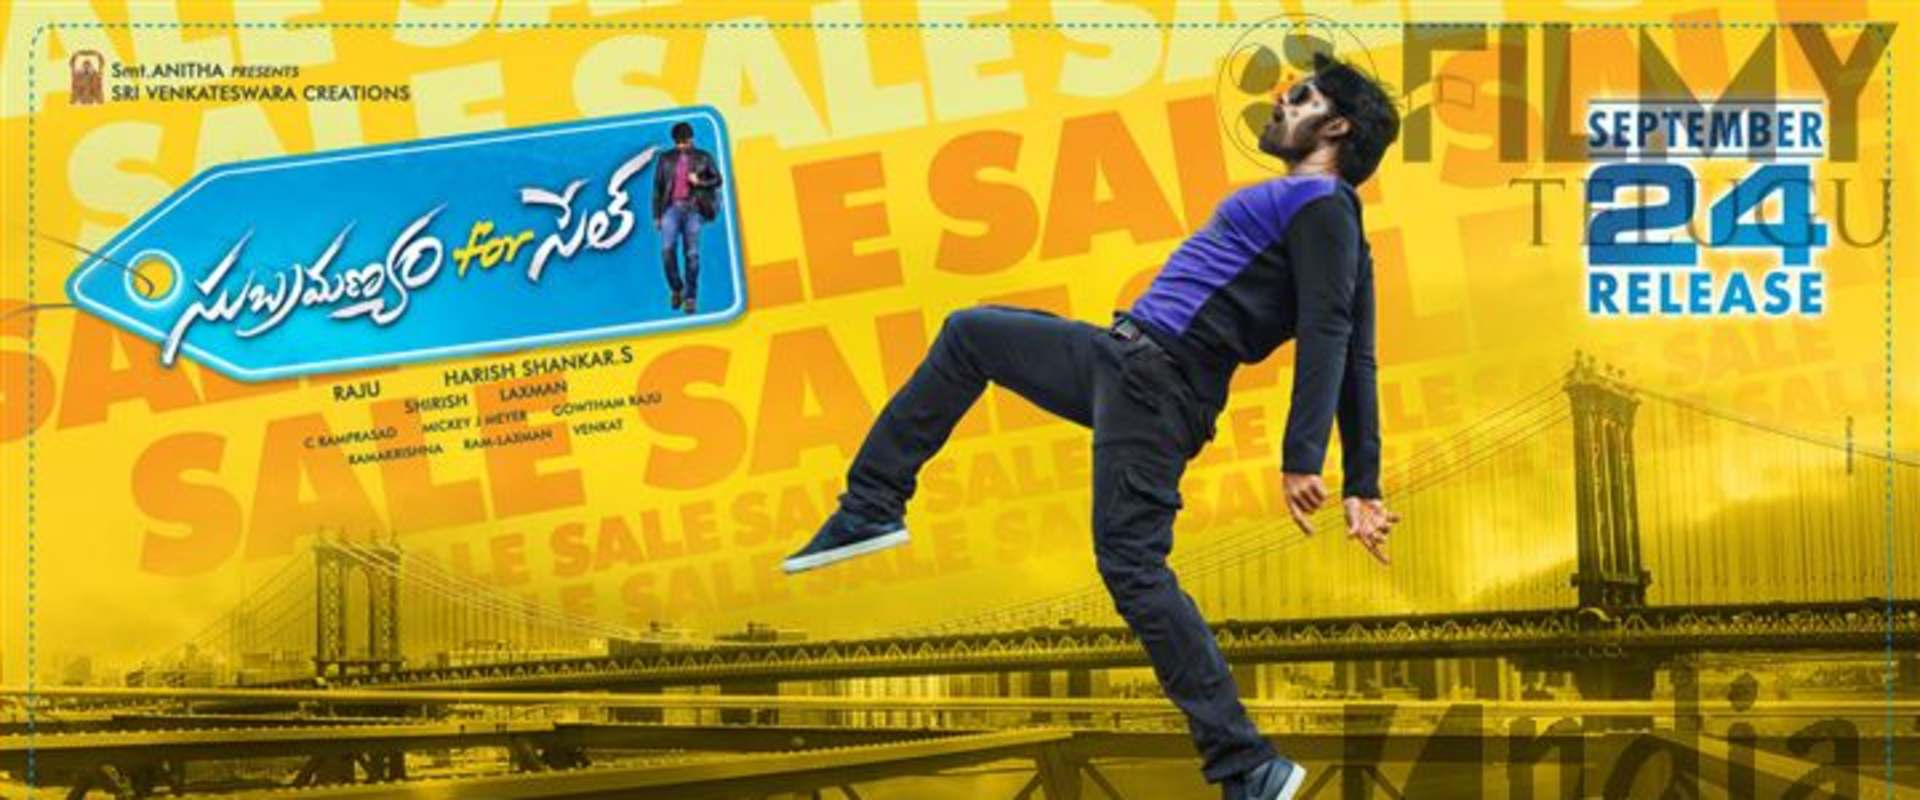 Subramanyam for Sale background 1